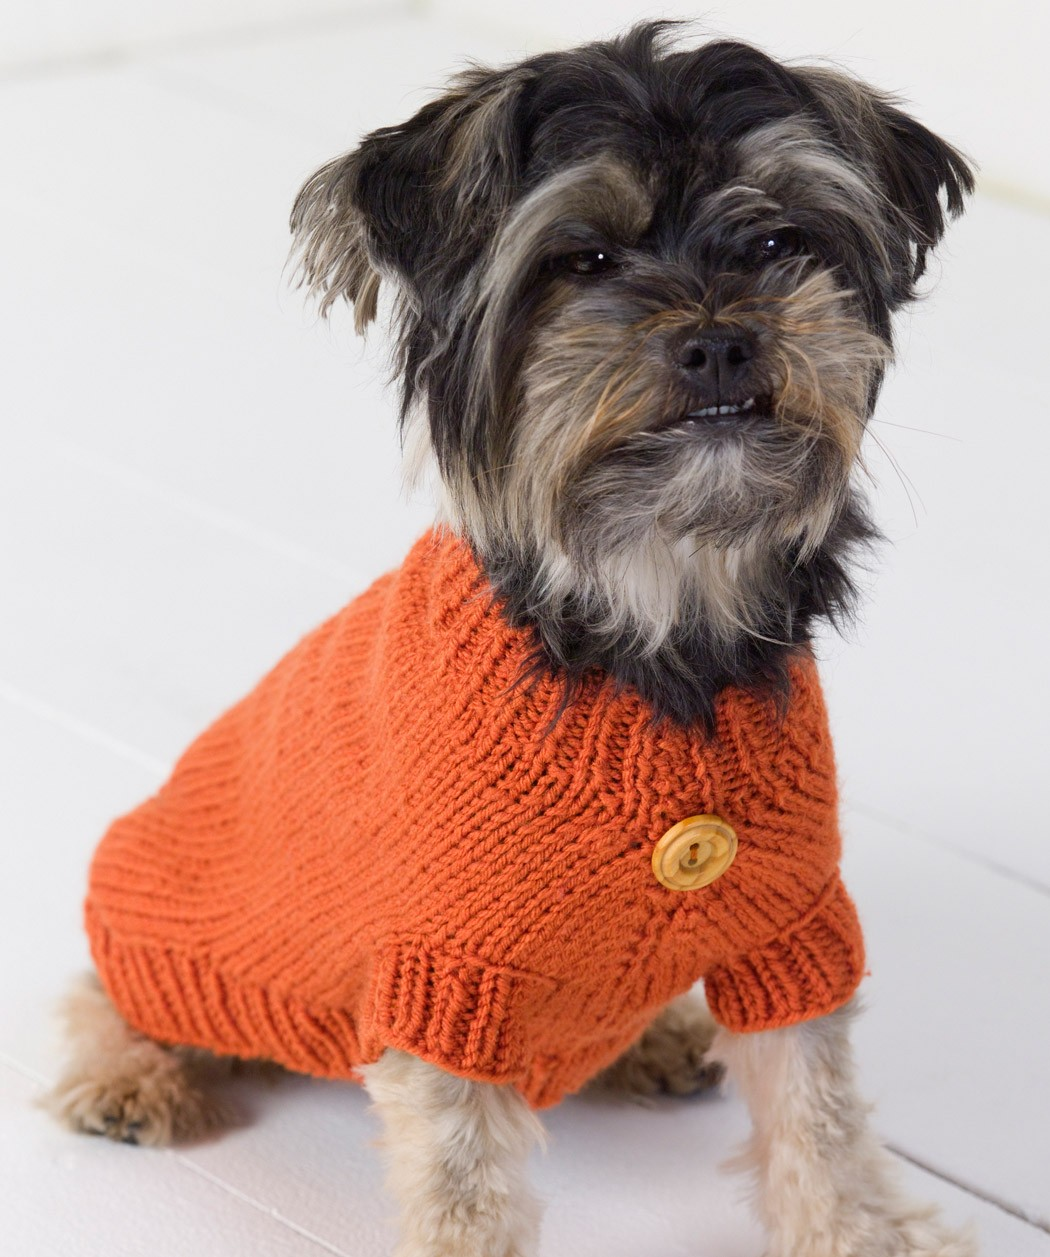 Knitting Pattern For Puppy Dogs : Dog Sweater Knitting Pattern Cute Small Dog Sweater Dog ...